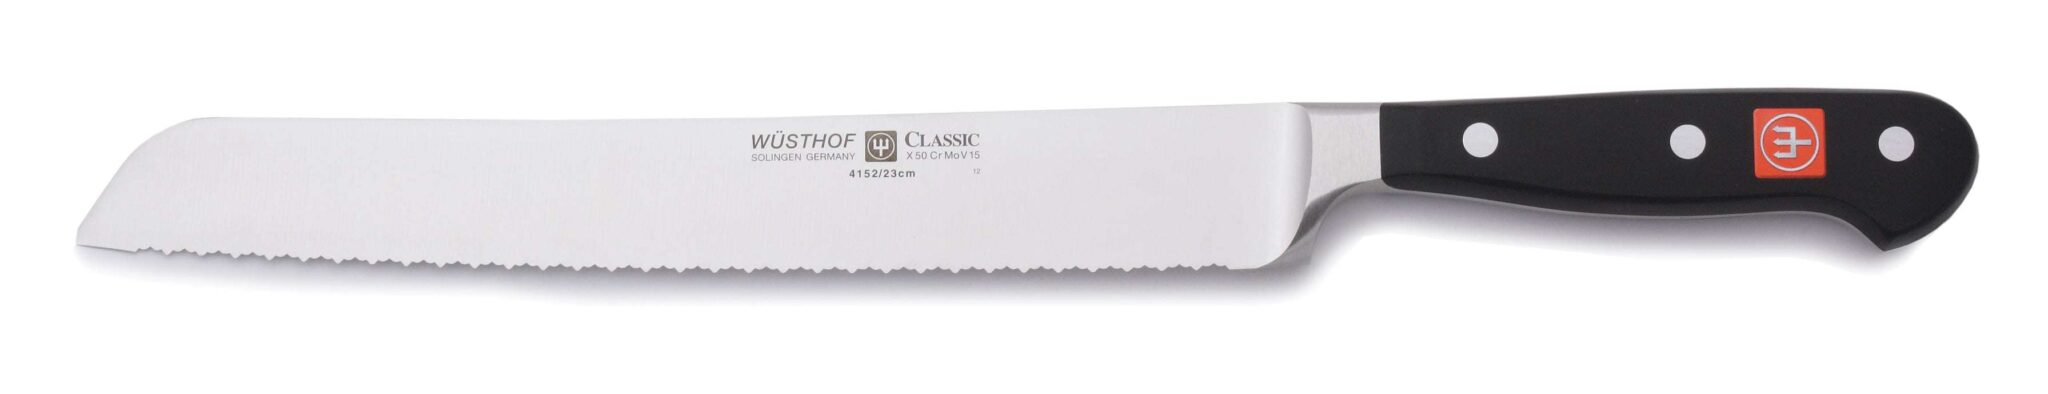 Wusthof double serrated knife on white background